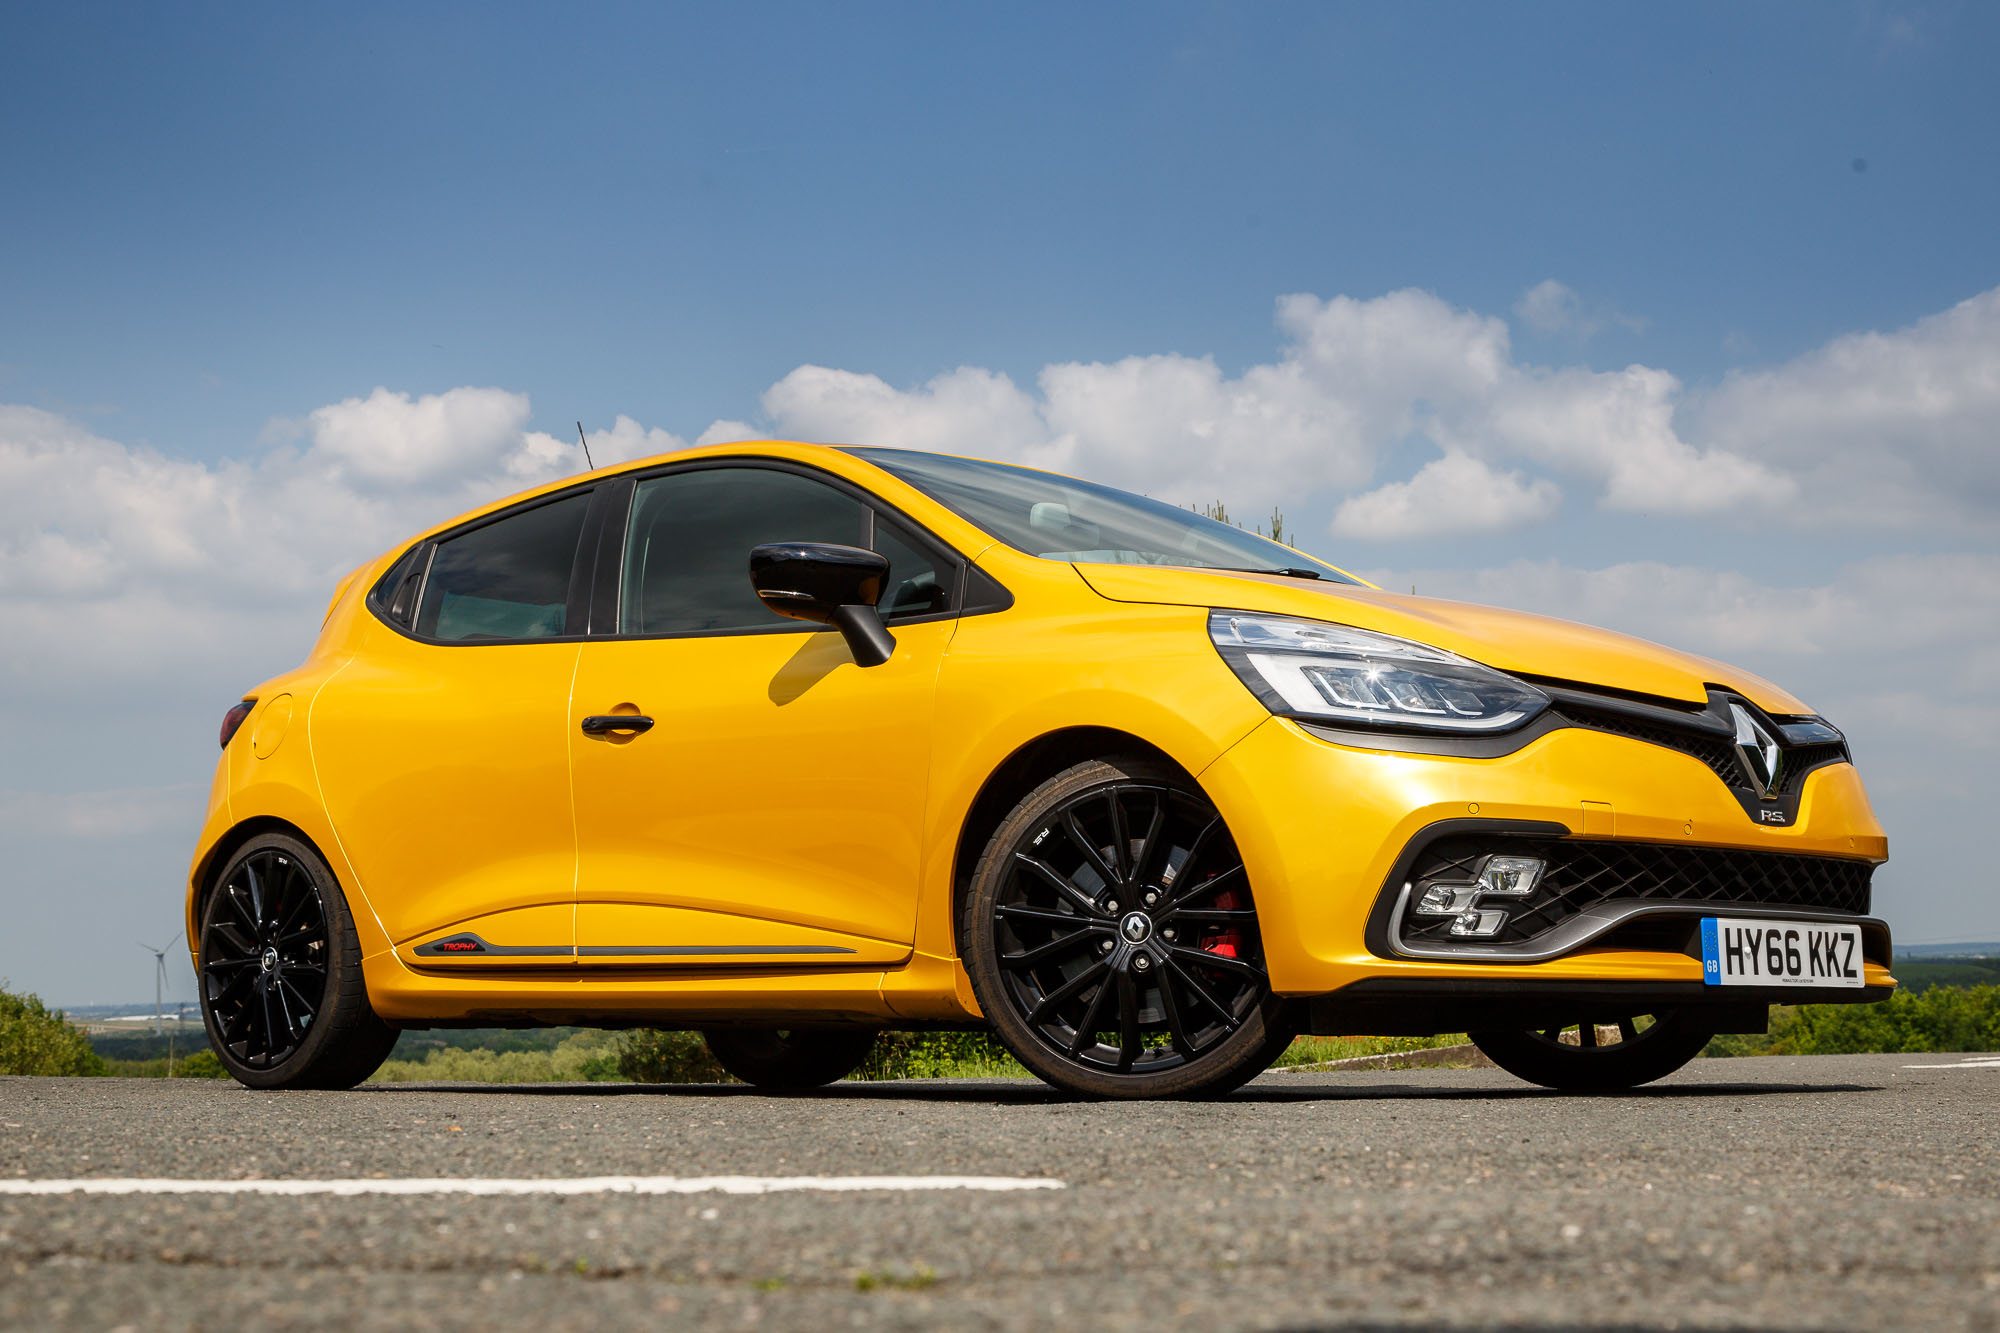 New Car Designs >> 2017 Renault Clio RS 220 Trophy EDC Review